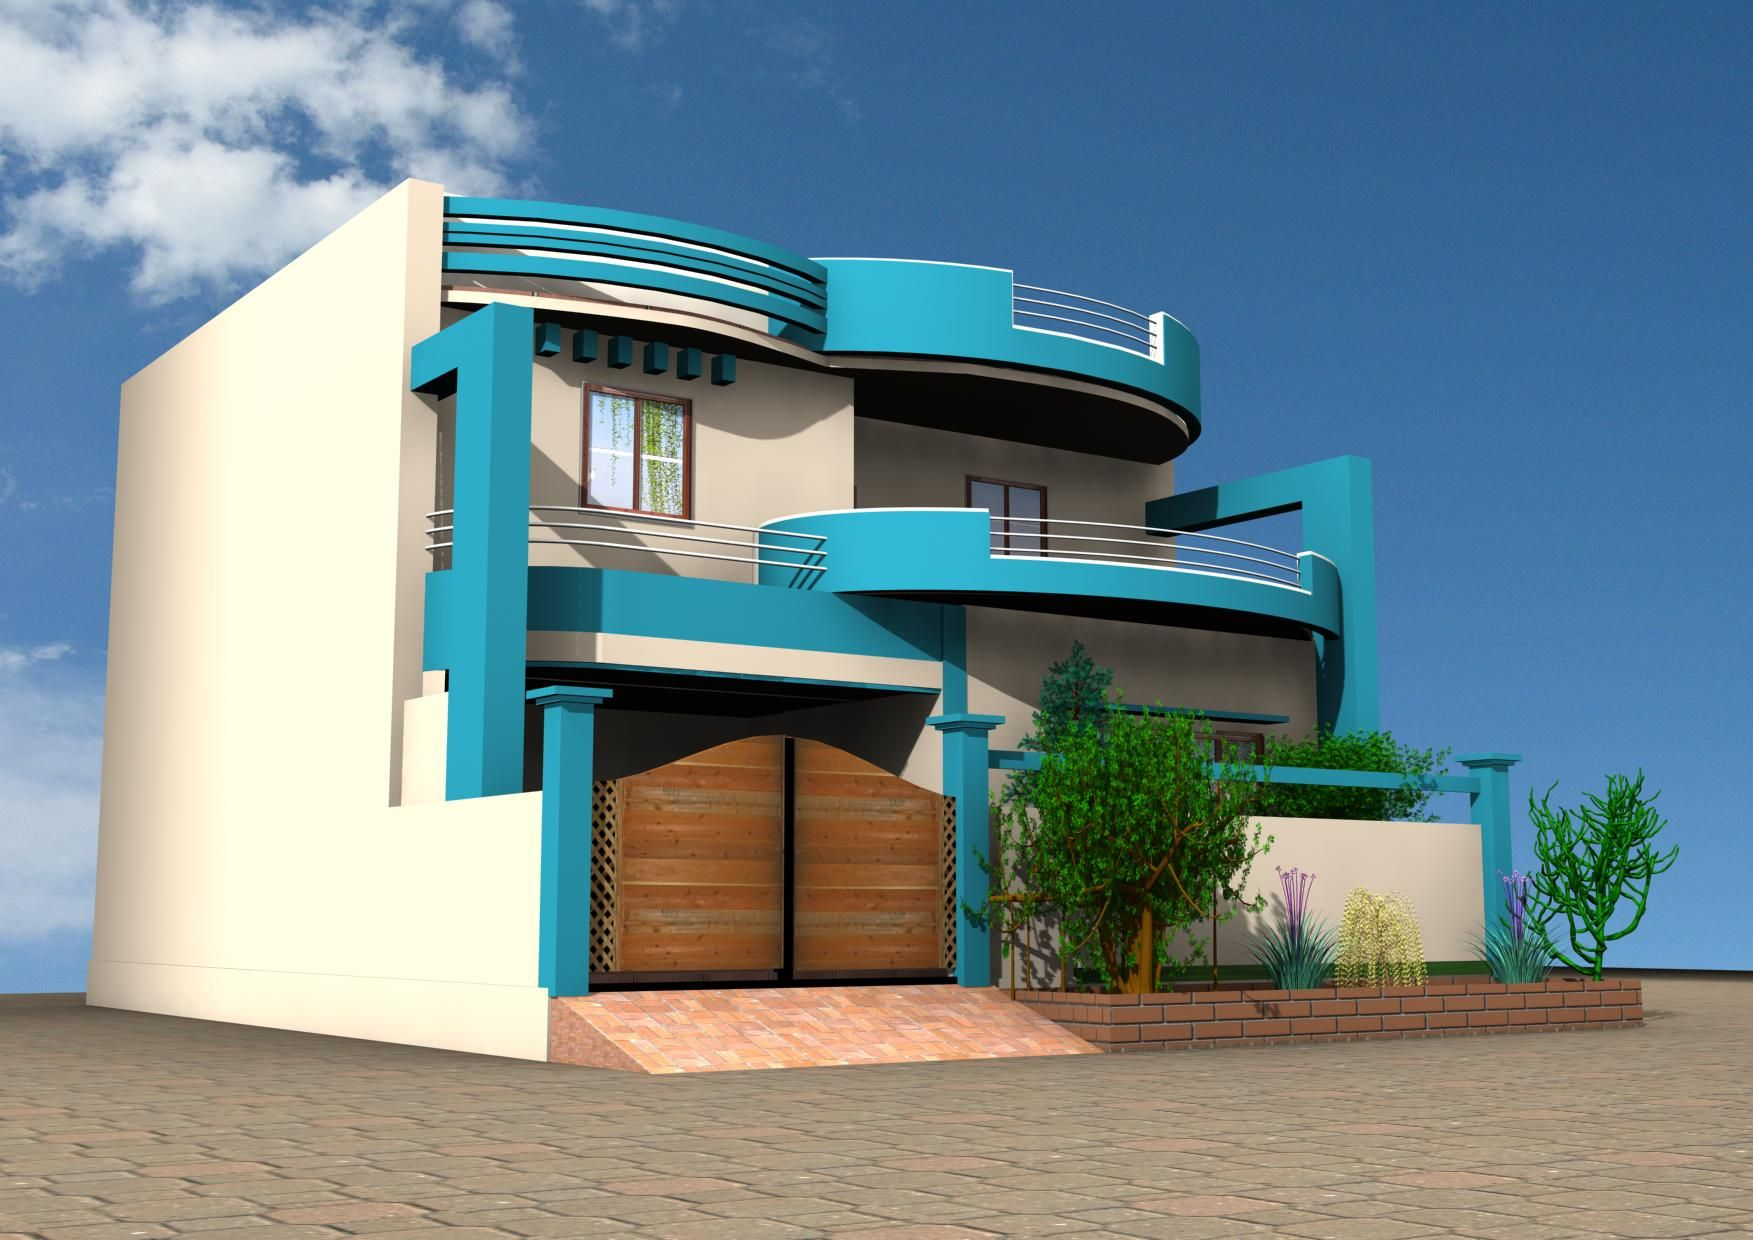 3d home design images hd 1080p for Exterior house design programs free